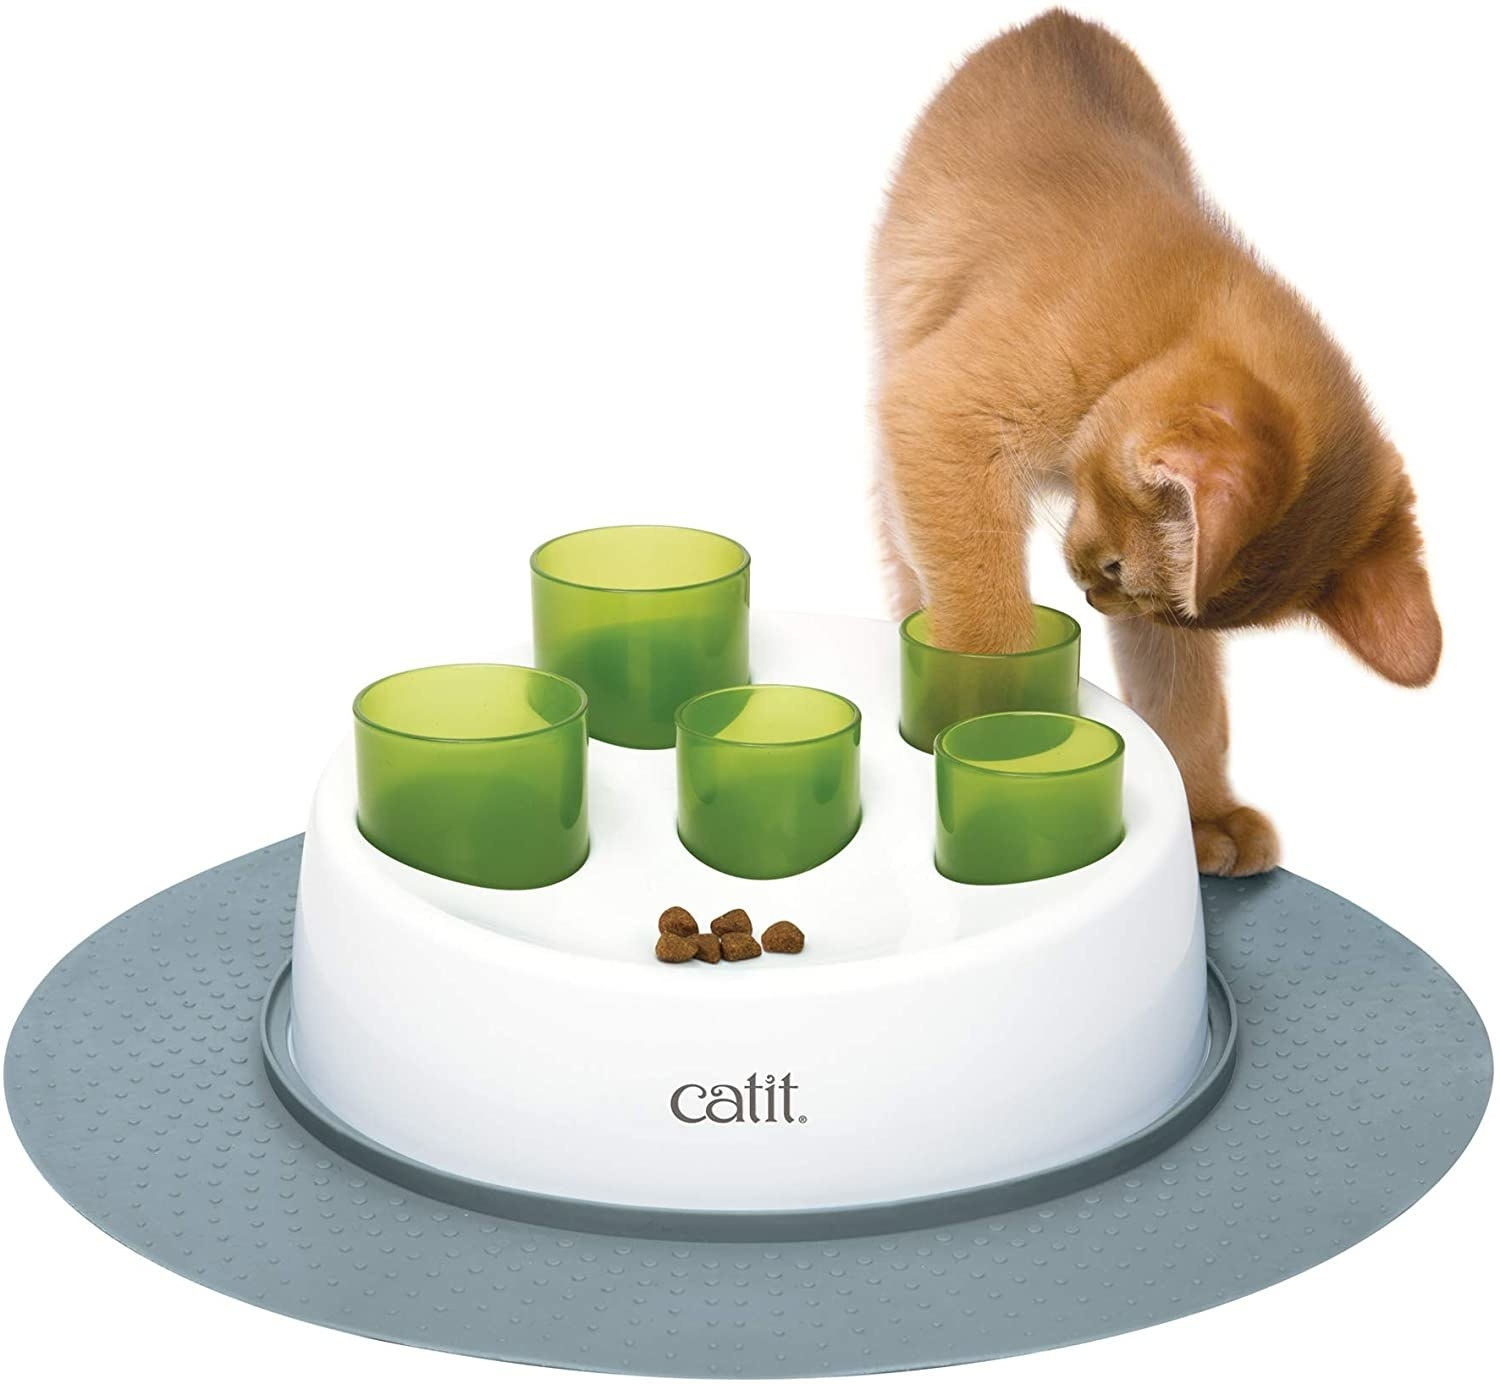 a kitten with their paw in one of the five green cylinders placed in a white circular holder